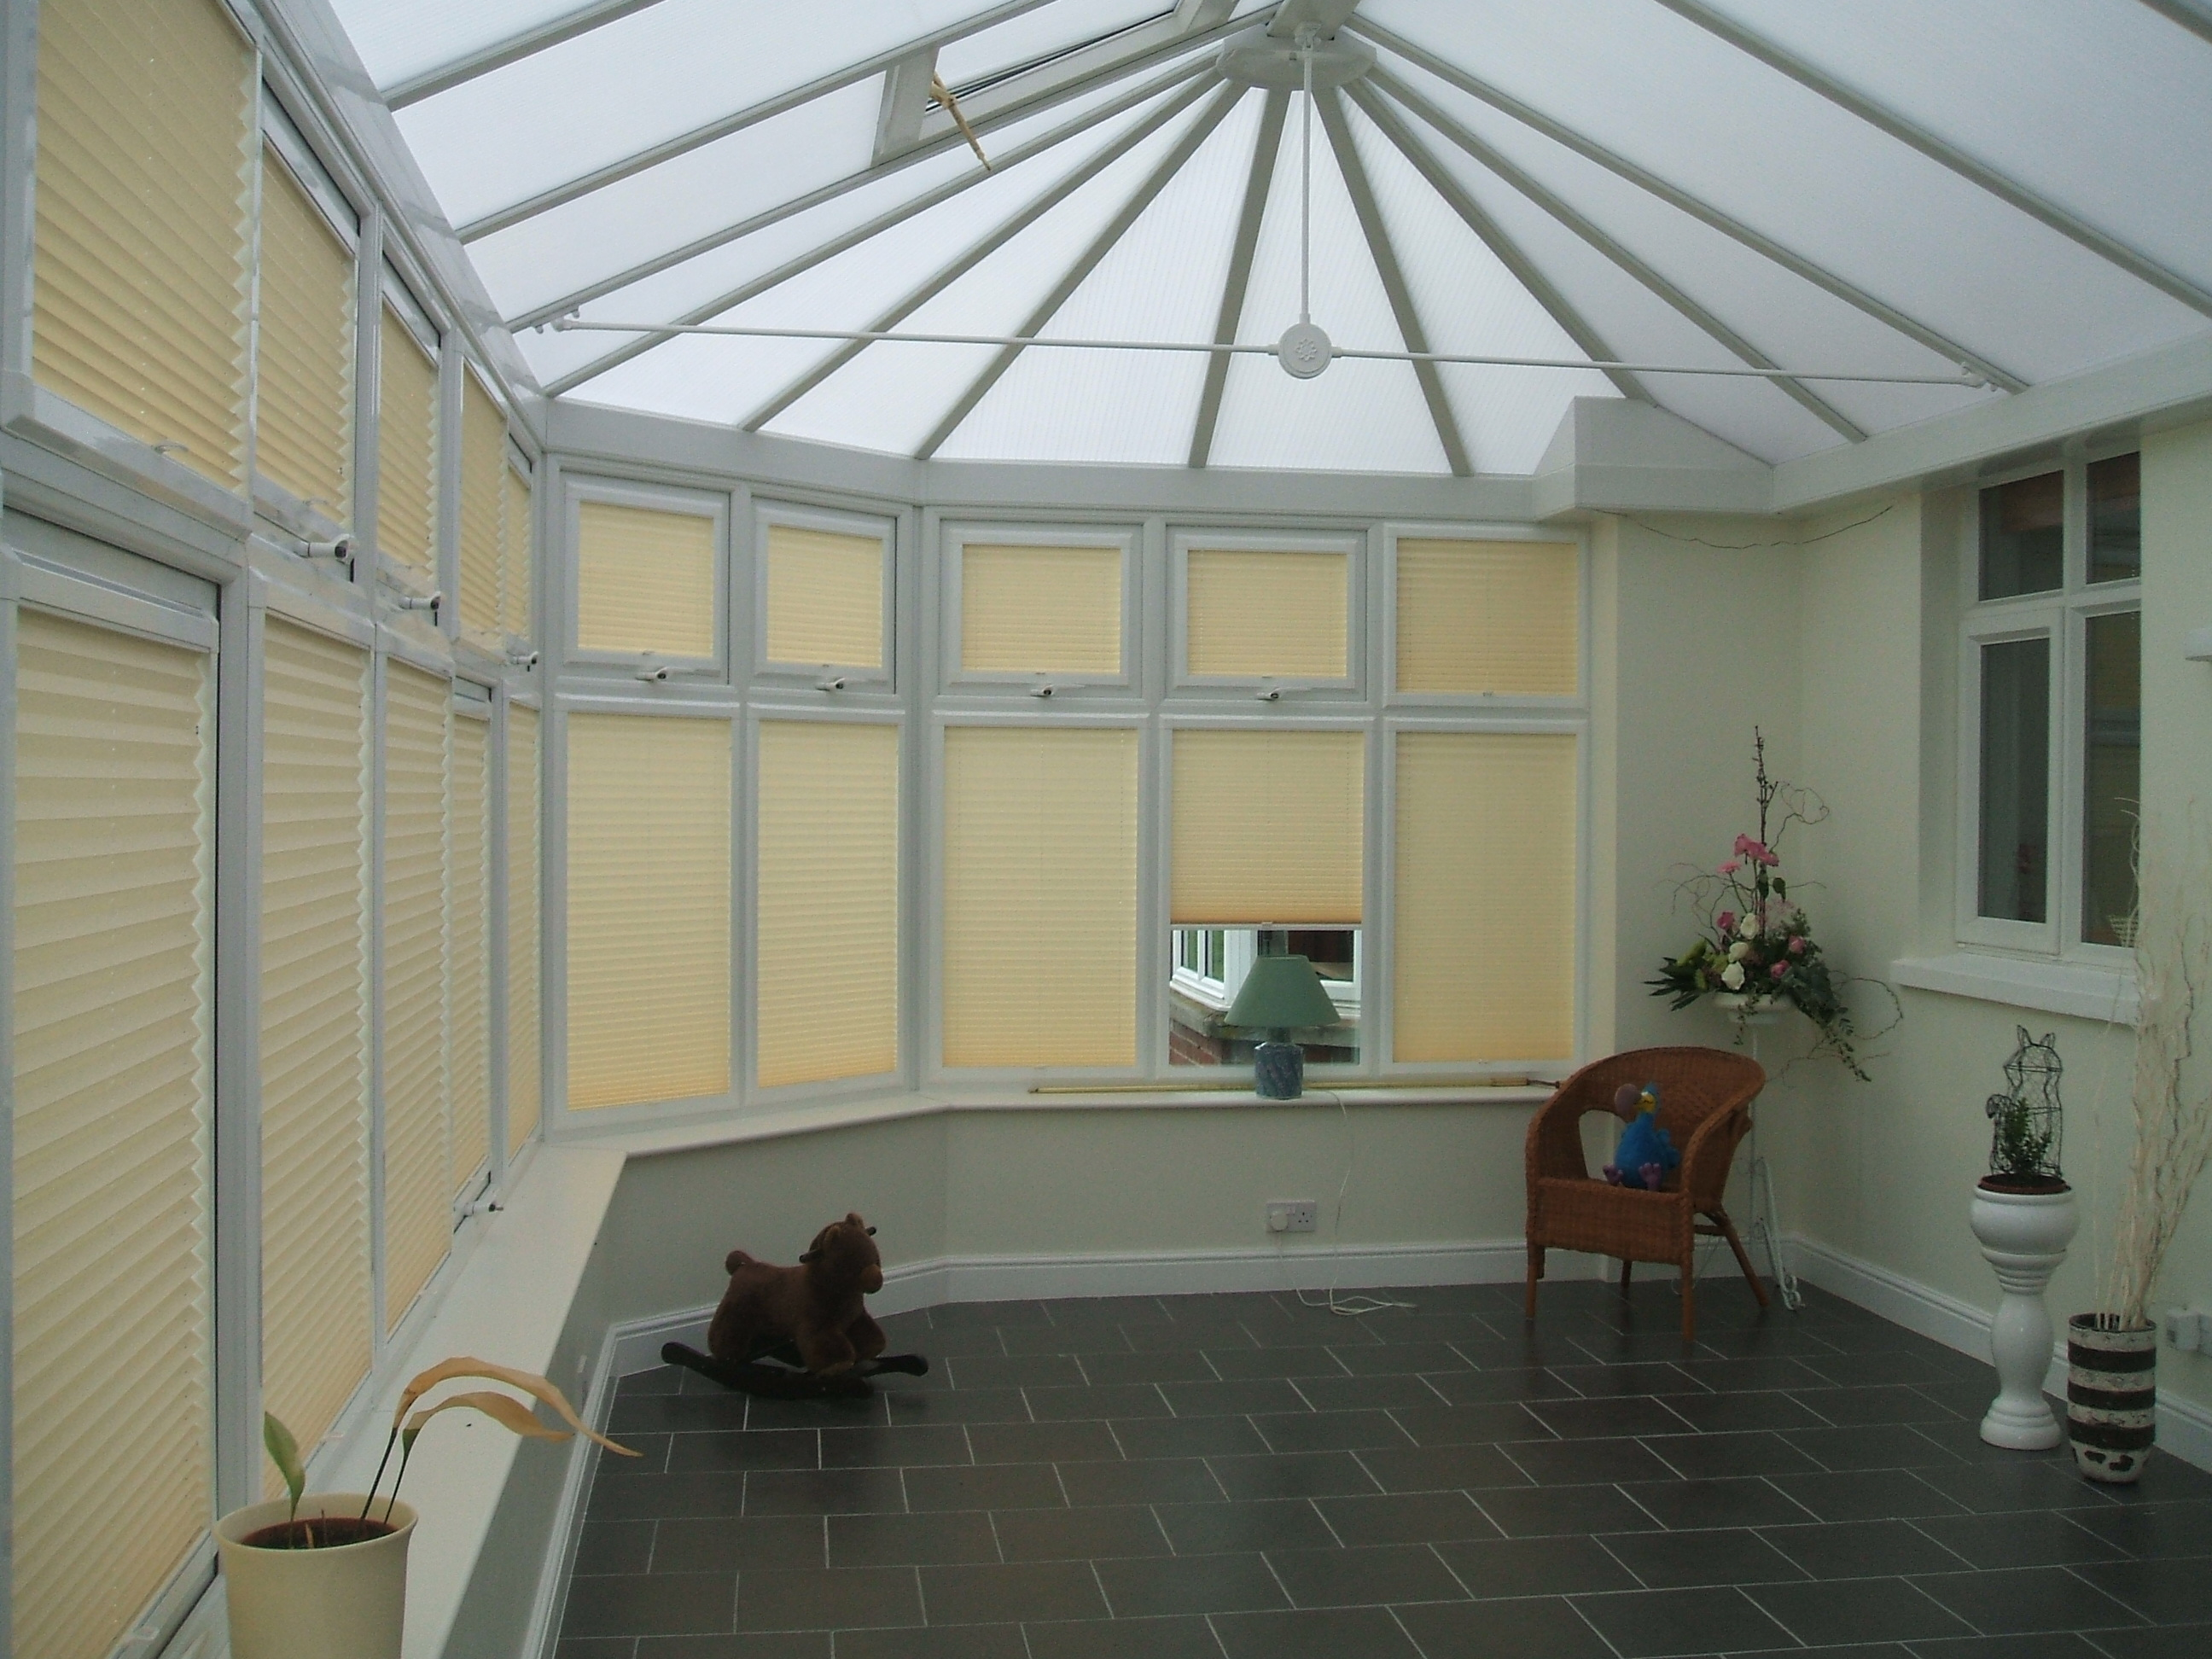 Baileys Blinds Blinds In Bury St Edmunds And Brandon